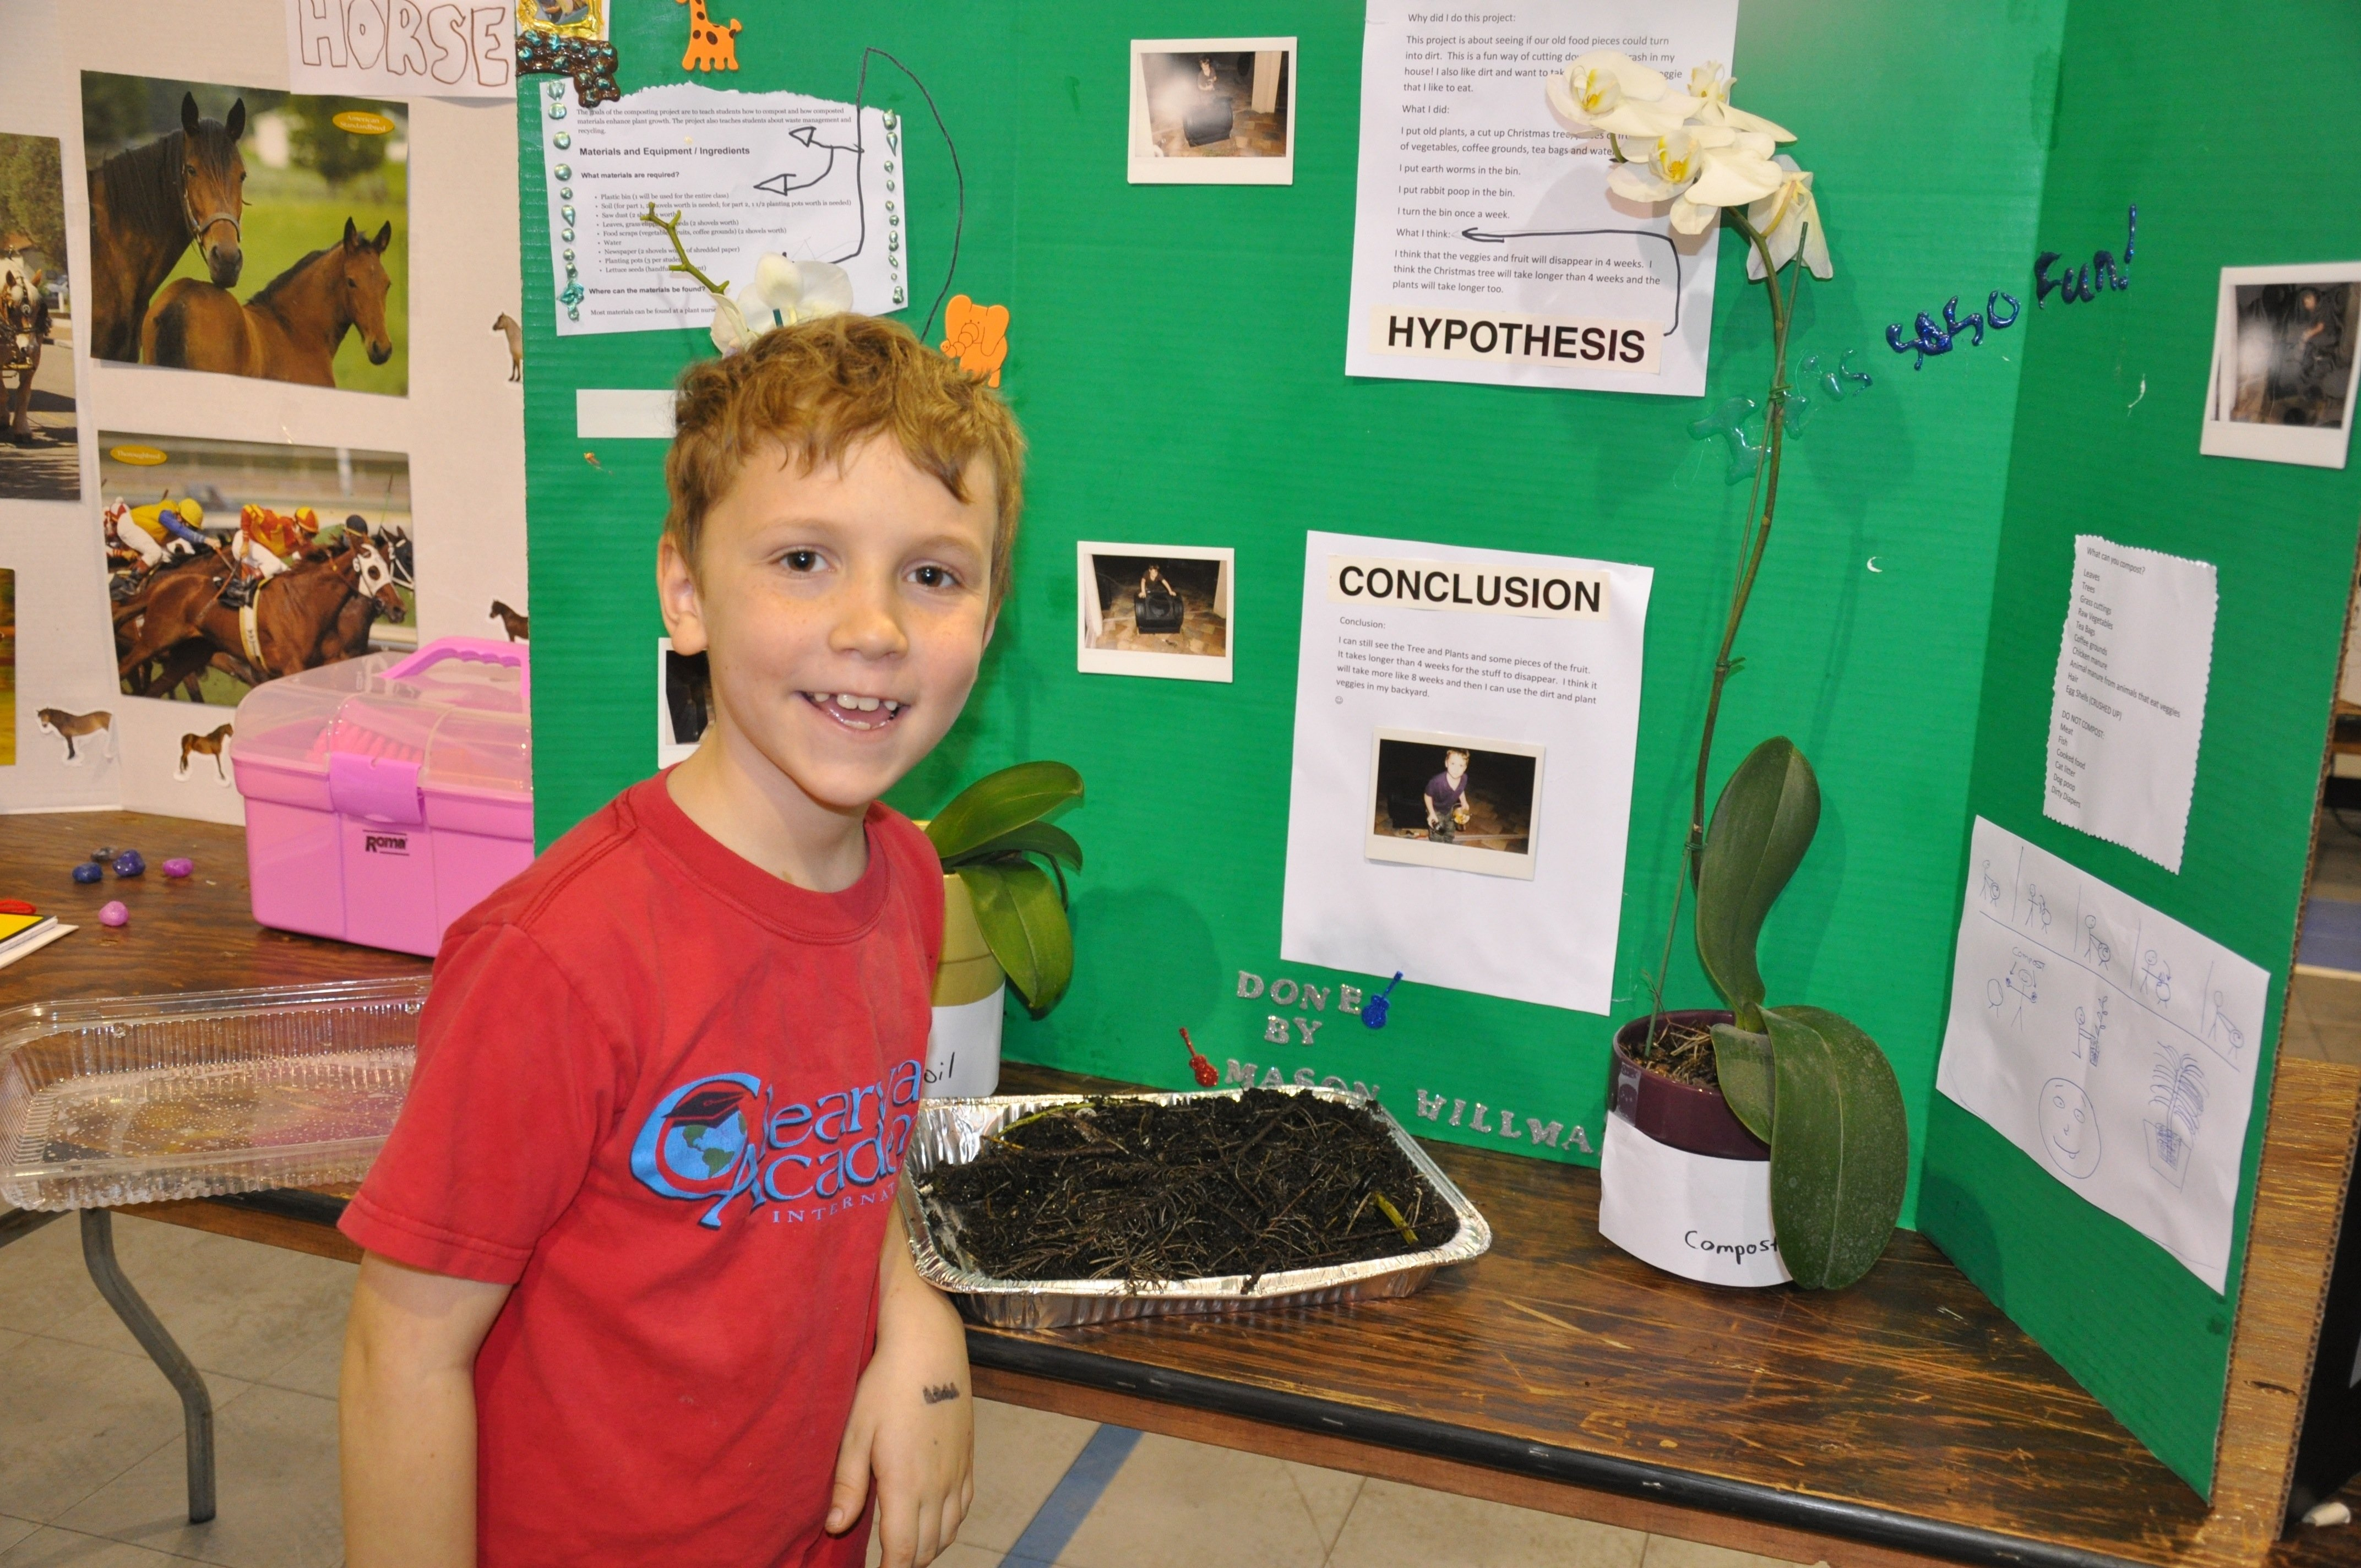 10 Most Recommended Science Fair Projects For 8Th Graders Winning Ideas fun 8th grade science fair projects custom paper writing service 34 2020